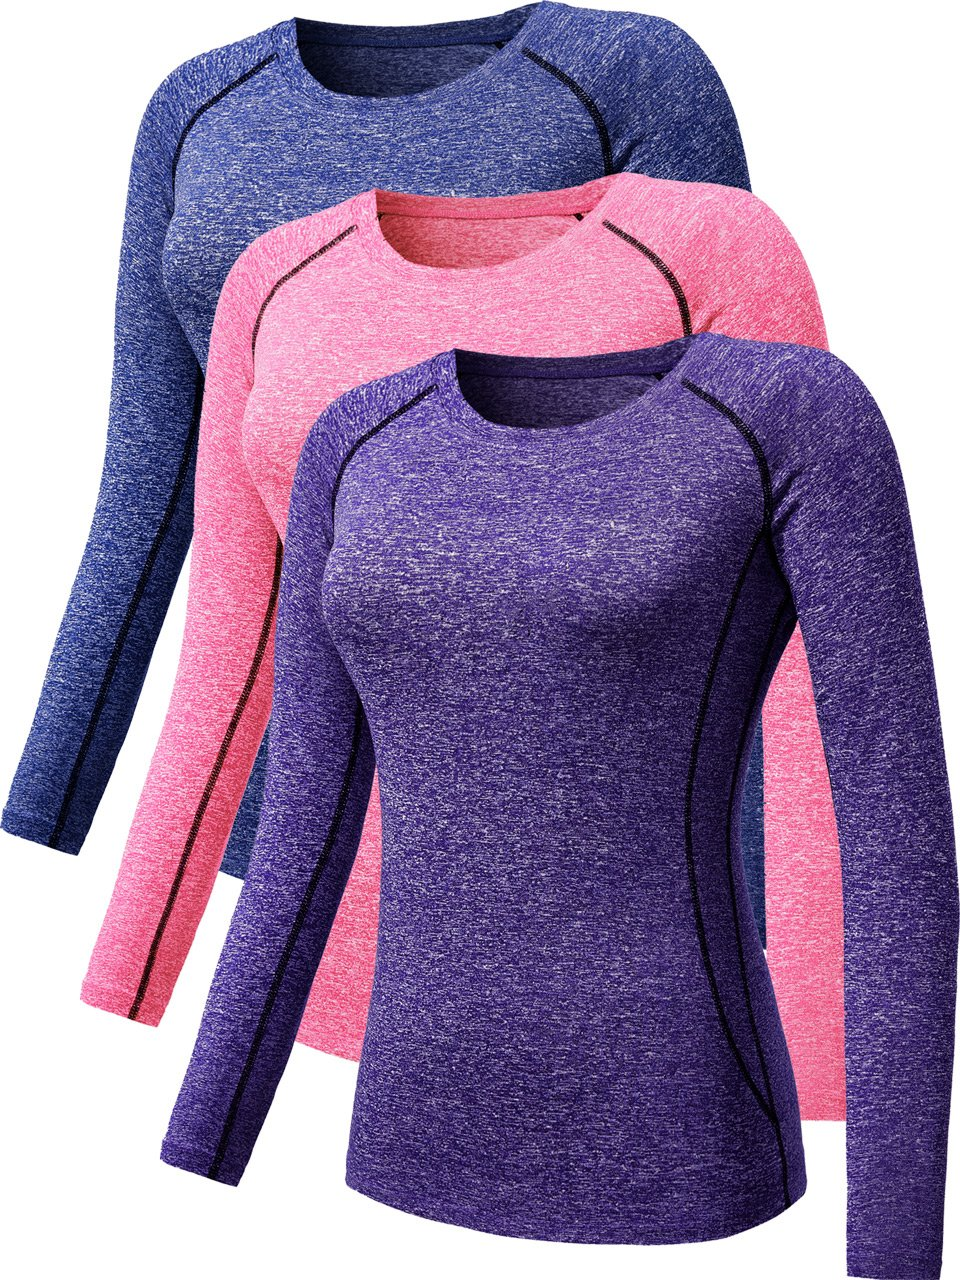 Neleus Women's 3 Pack Compression Wear Athletic Long Sleeve Shirt for Girls,8021,Blue,Purple,Pink,S by Neleus